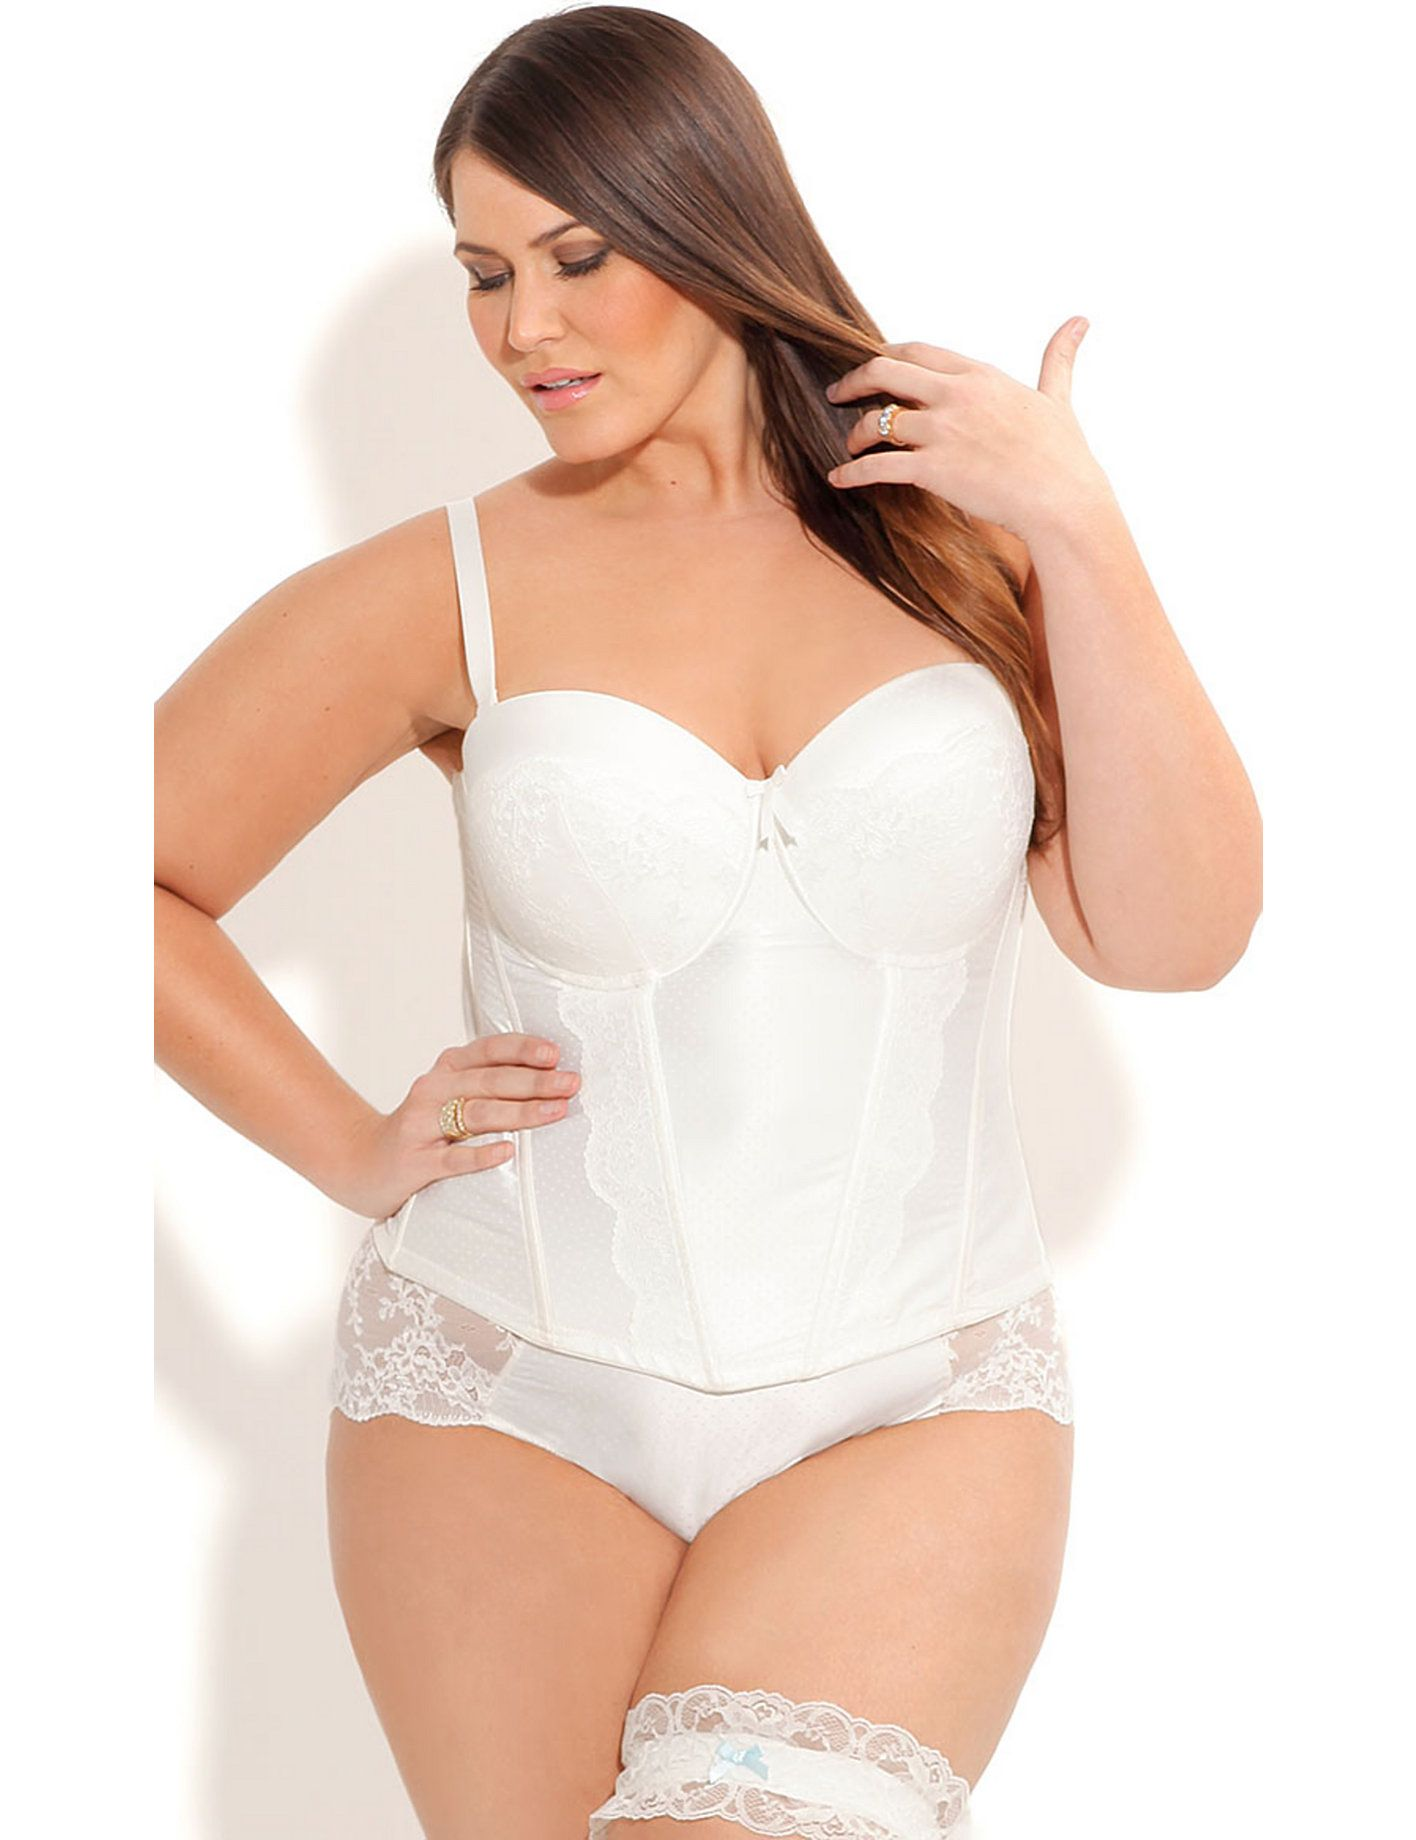 98d3580a25 Plus Size Bridal Lingerie - Corsets   Underwear for Plus Size Brides ...